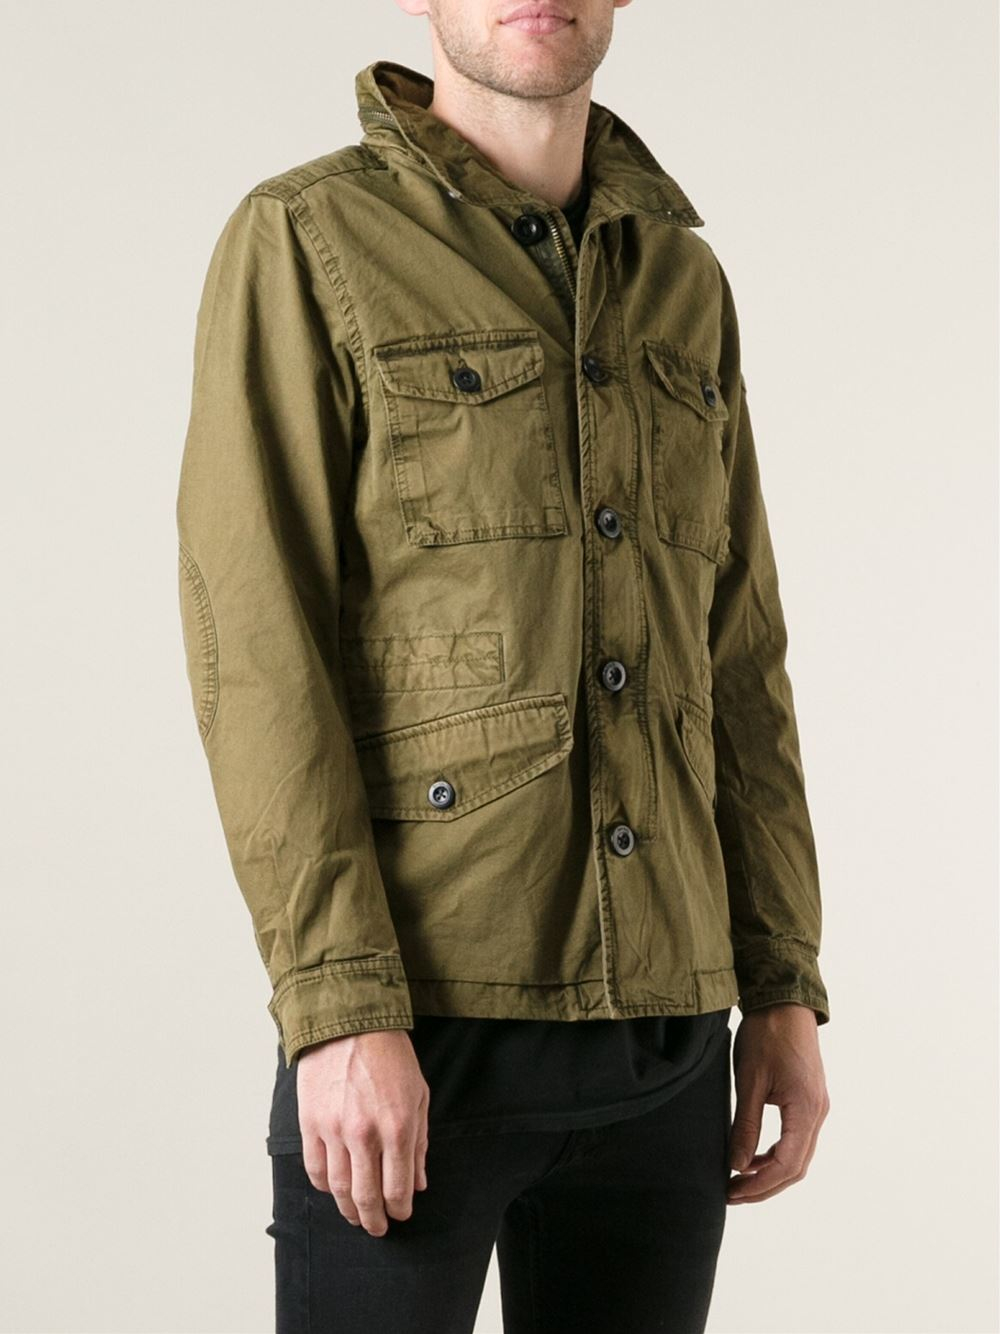 Shop Cool Military Surplus Style Jackets & M65 Jackets at Old Navy Online. Create a classic casual look with military jackets from this amazing selection at Old Navy. Discover Amazing Designs. Browse military jackets from this fantastic selection at Old Navy and find the perfect design for your look. A field jacket is a highly adaptable garment.